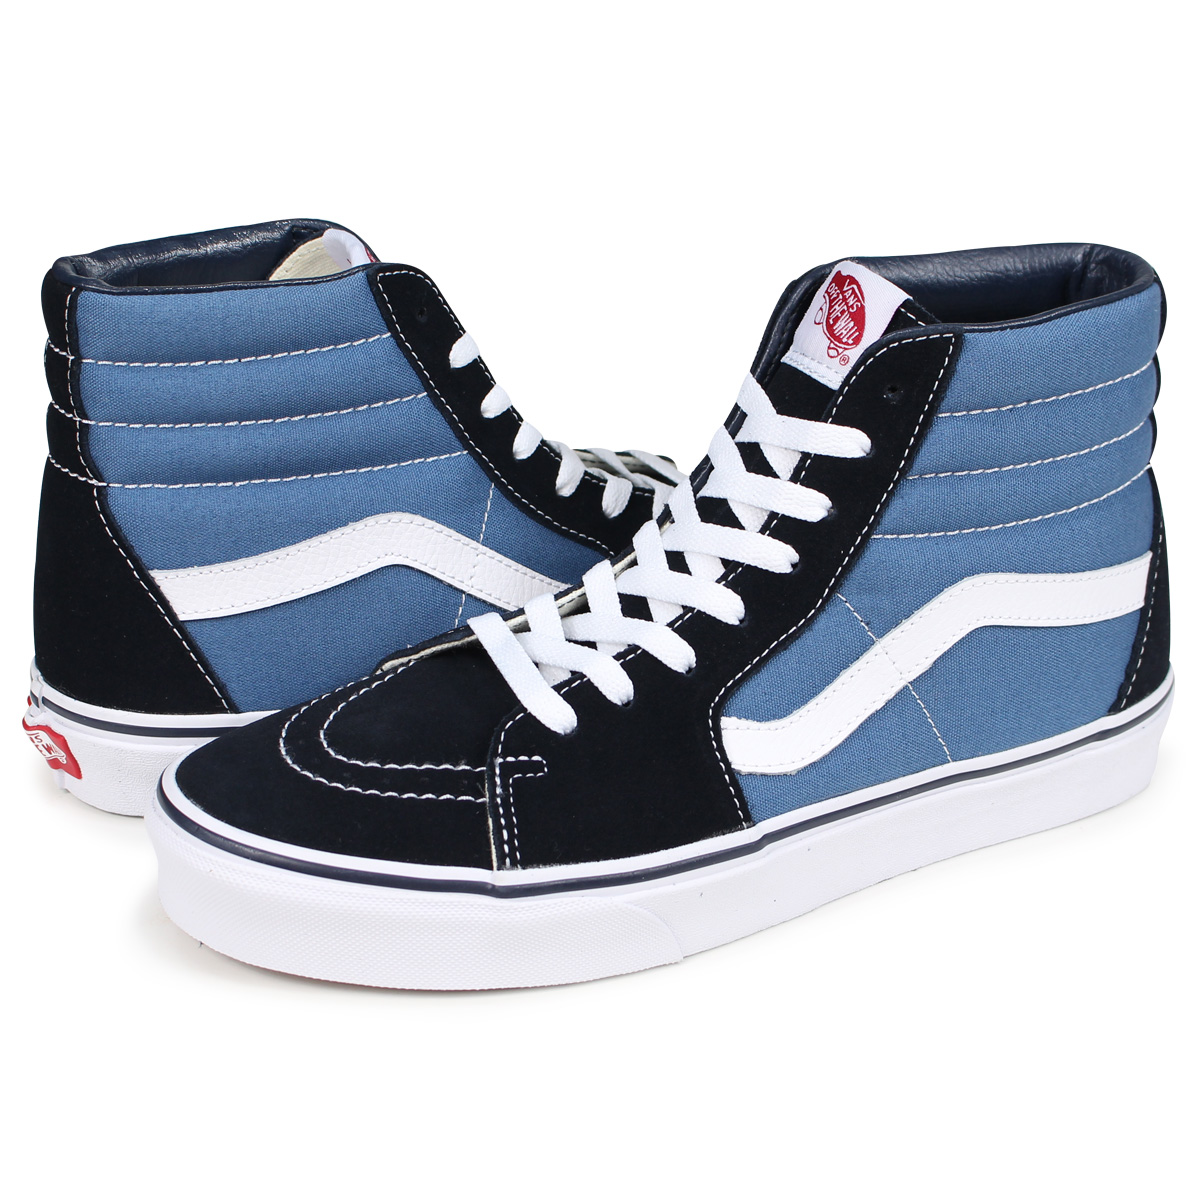 7c4008d494 VANS SK8-HI VN000D5INVY skating high sneakers men gap Dis vans station  wagons navy  load planned Shinnyu load in reservation product 9 5  containing